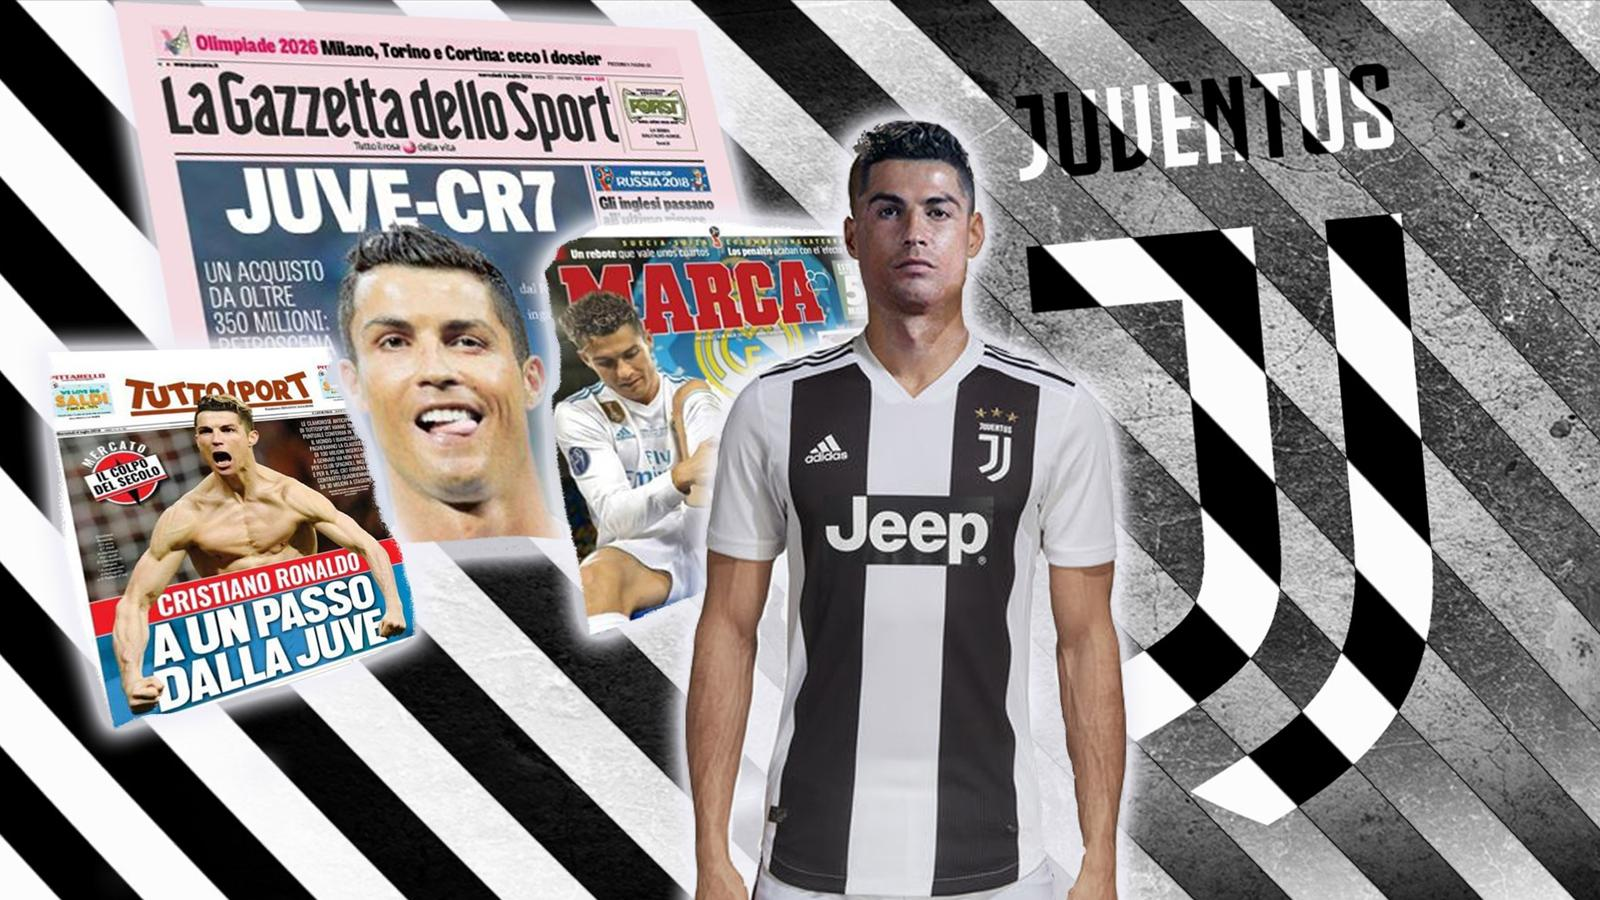 VIDEO   Euro Papers  Cristiano Ronaldo s move from Real Madrid to     VIDEO   Euro Papers  Cristiano Ronaldo s move from Real Madrid to Juventus   is happening     Video Eurosport UK